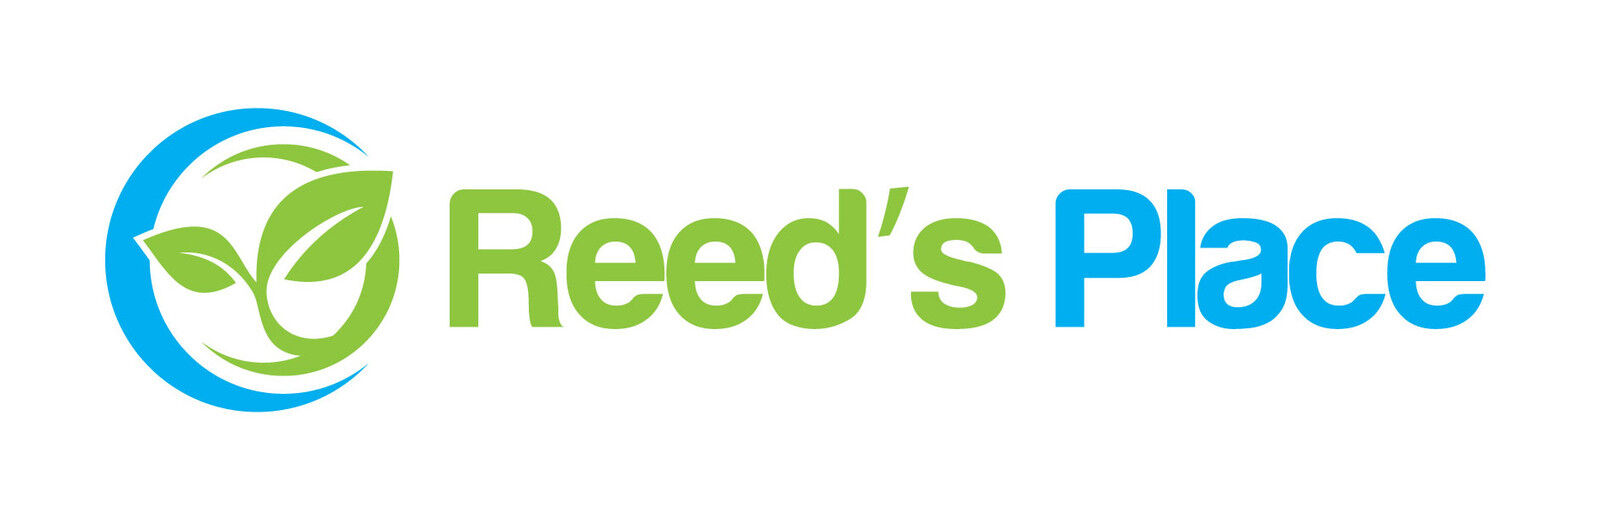 Reed's Place